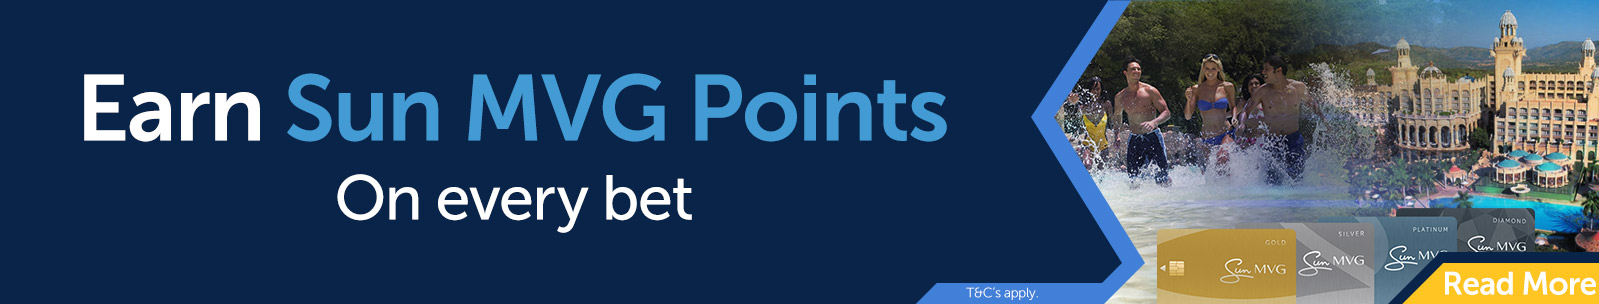 Earn Sun MVG Points on every bet